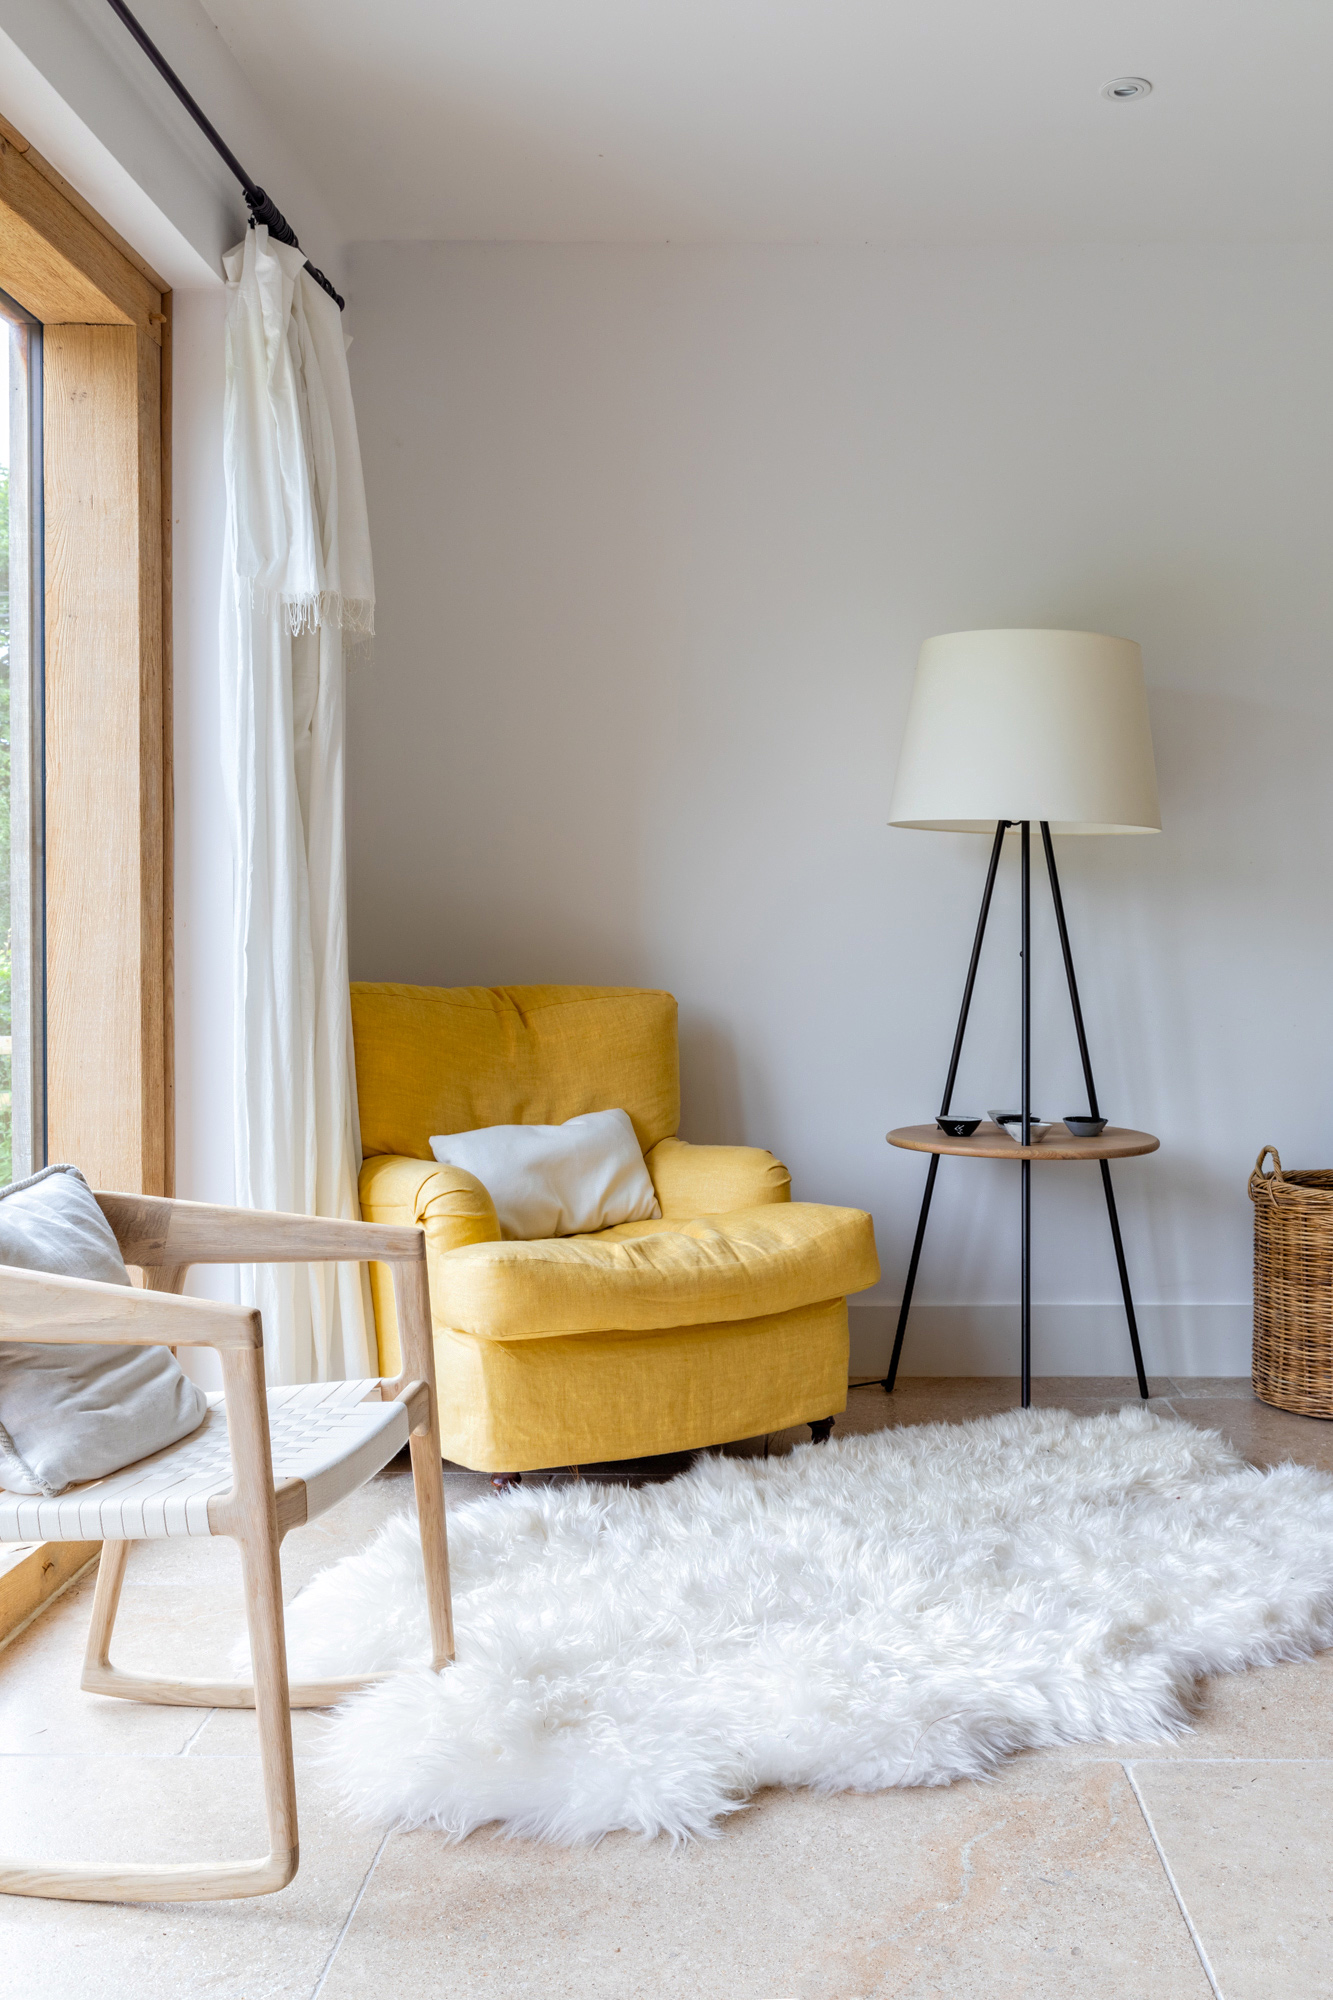 Country house living room photo:  yellow armchair, lamp